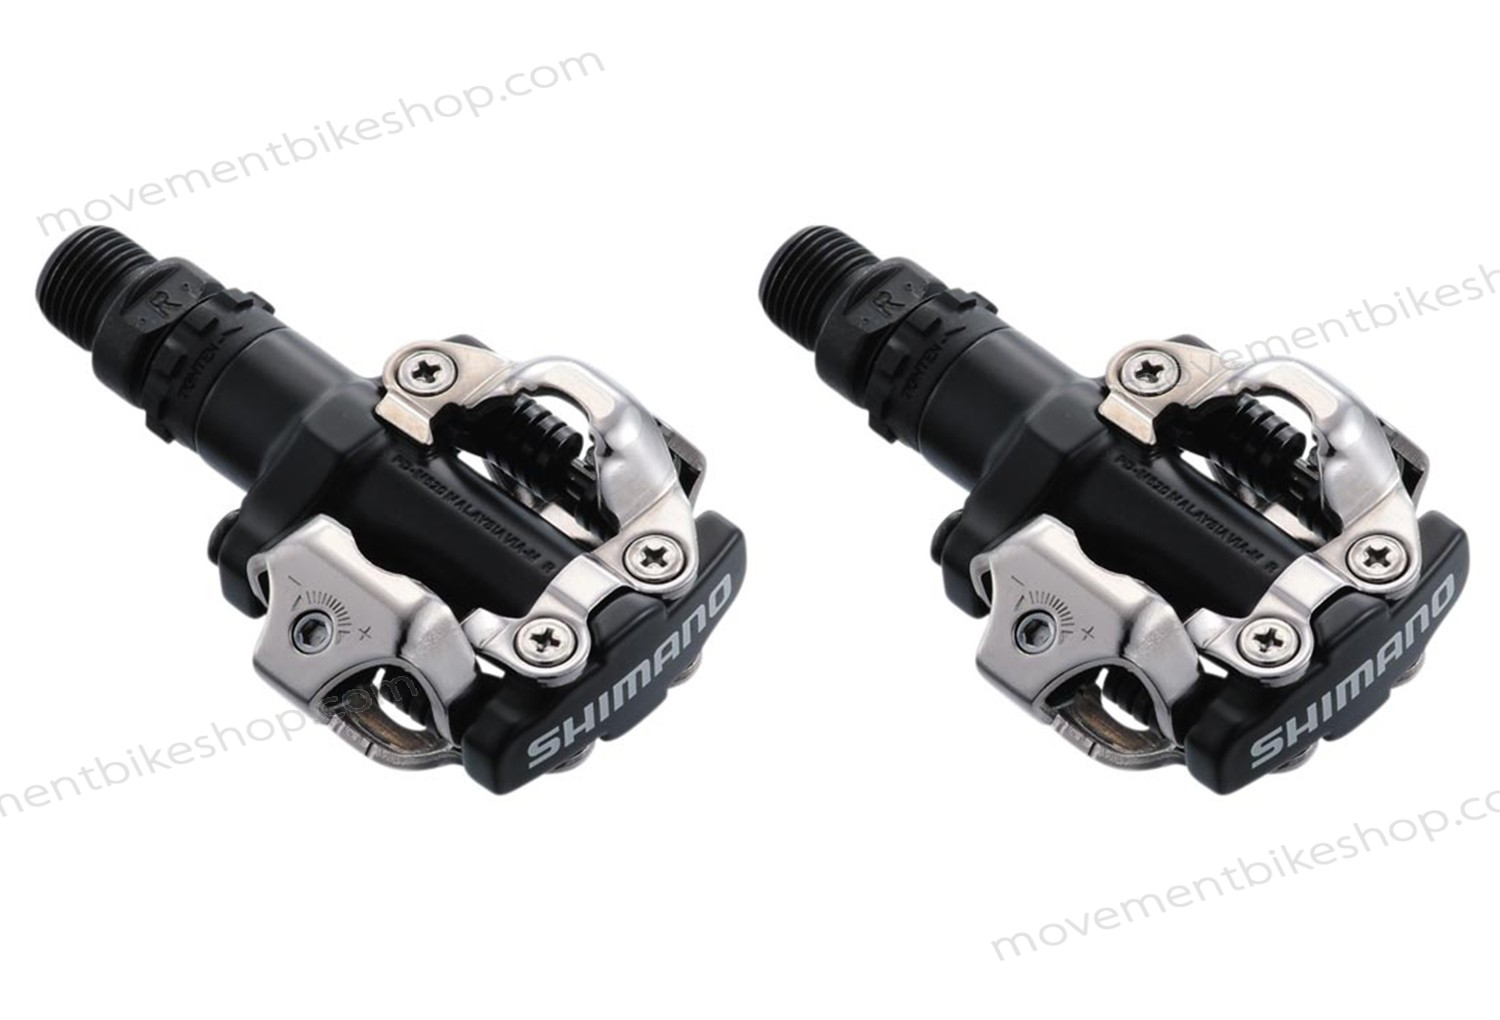 Shimano On Sale - M520 Clipless SPD MTB Pedals Black ♠ 60% Off - Shimano On Sale M520 Clipless SPD MTB Pedals Black ♠ 60% Off-31